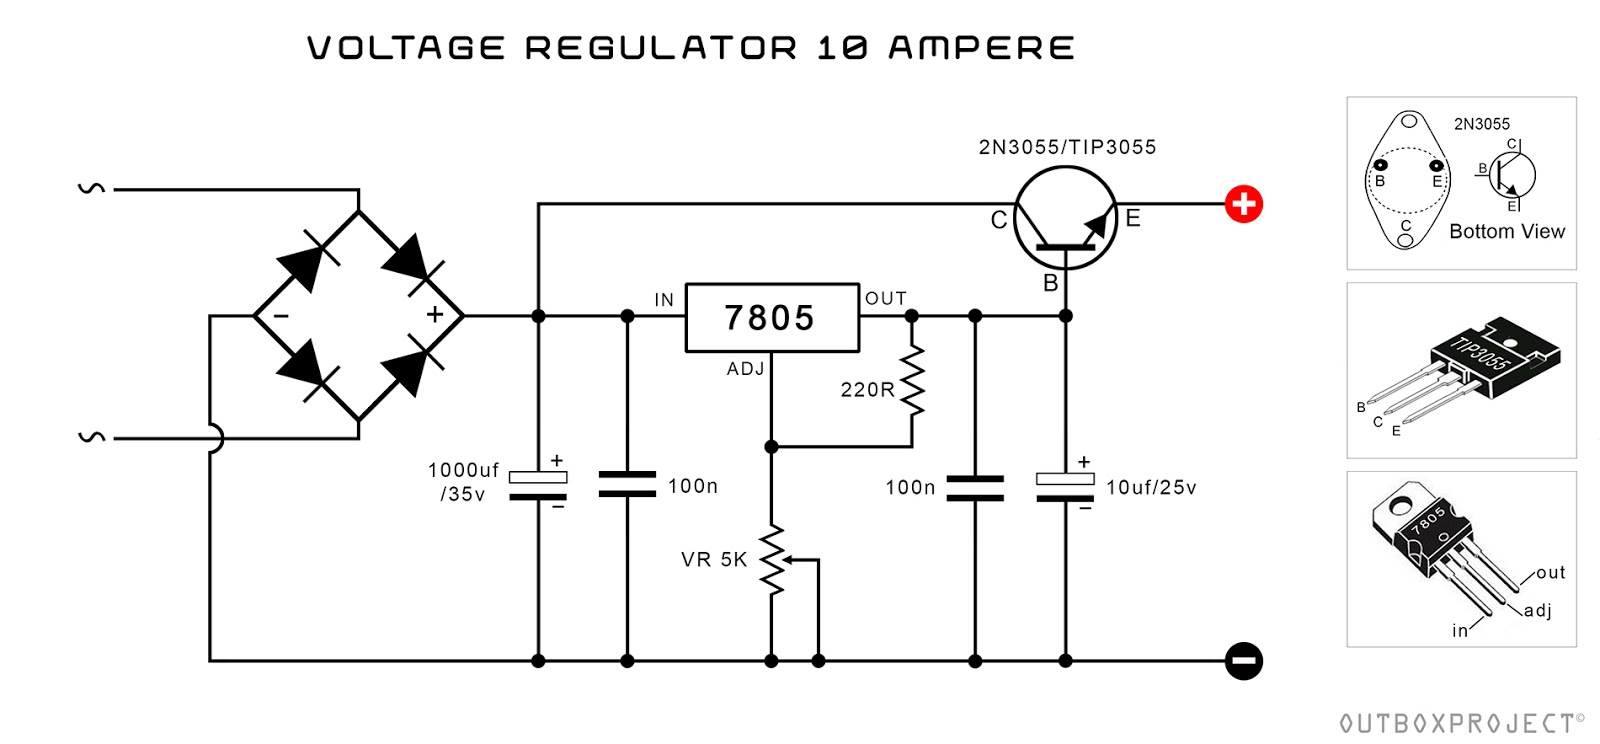 12v jacking up the 7805 regulator